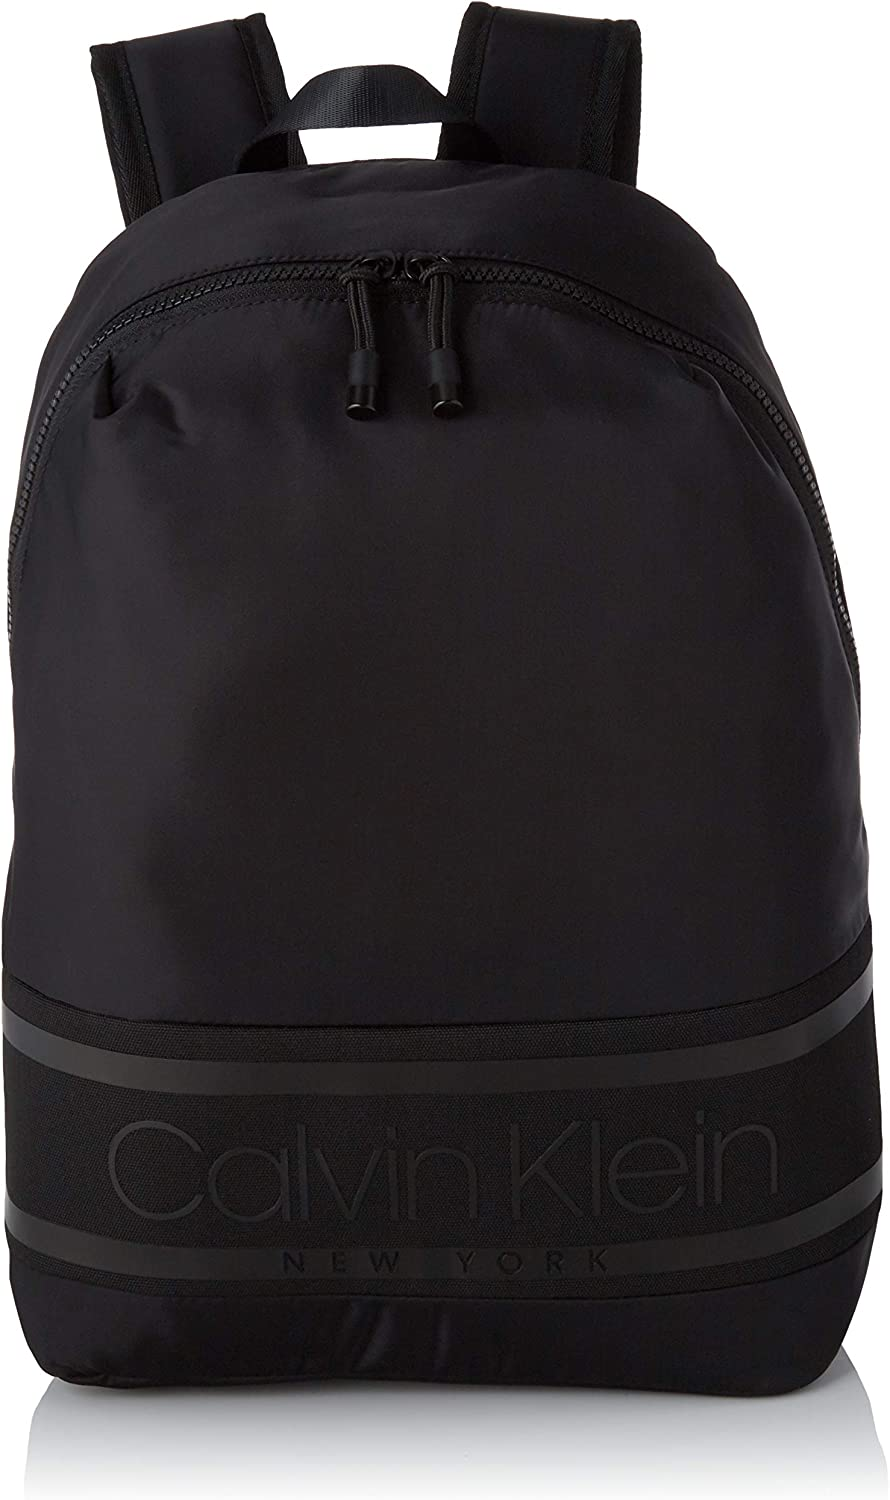 Calvin Klein Striped Logo Round Backpack - Mochilas Hombre